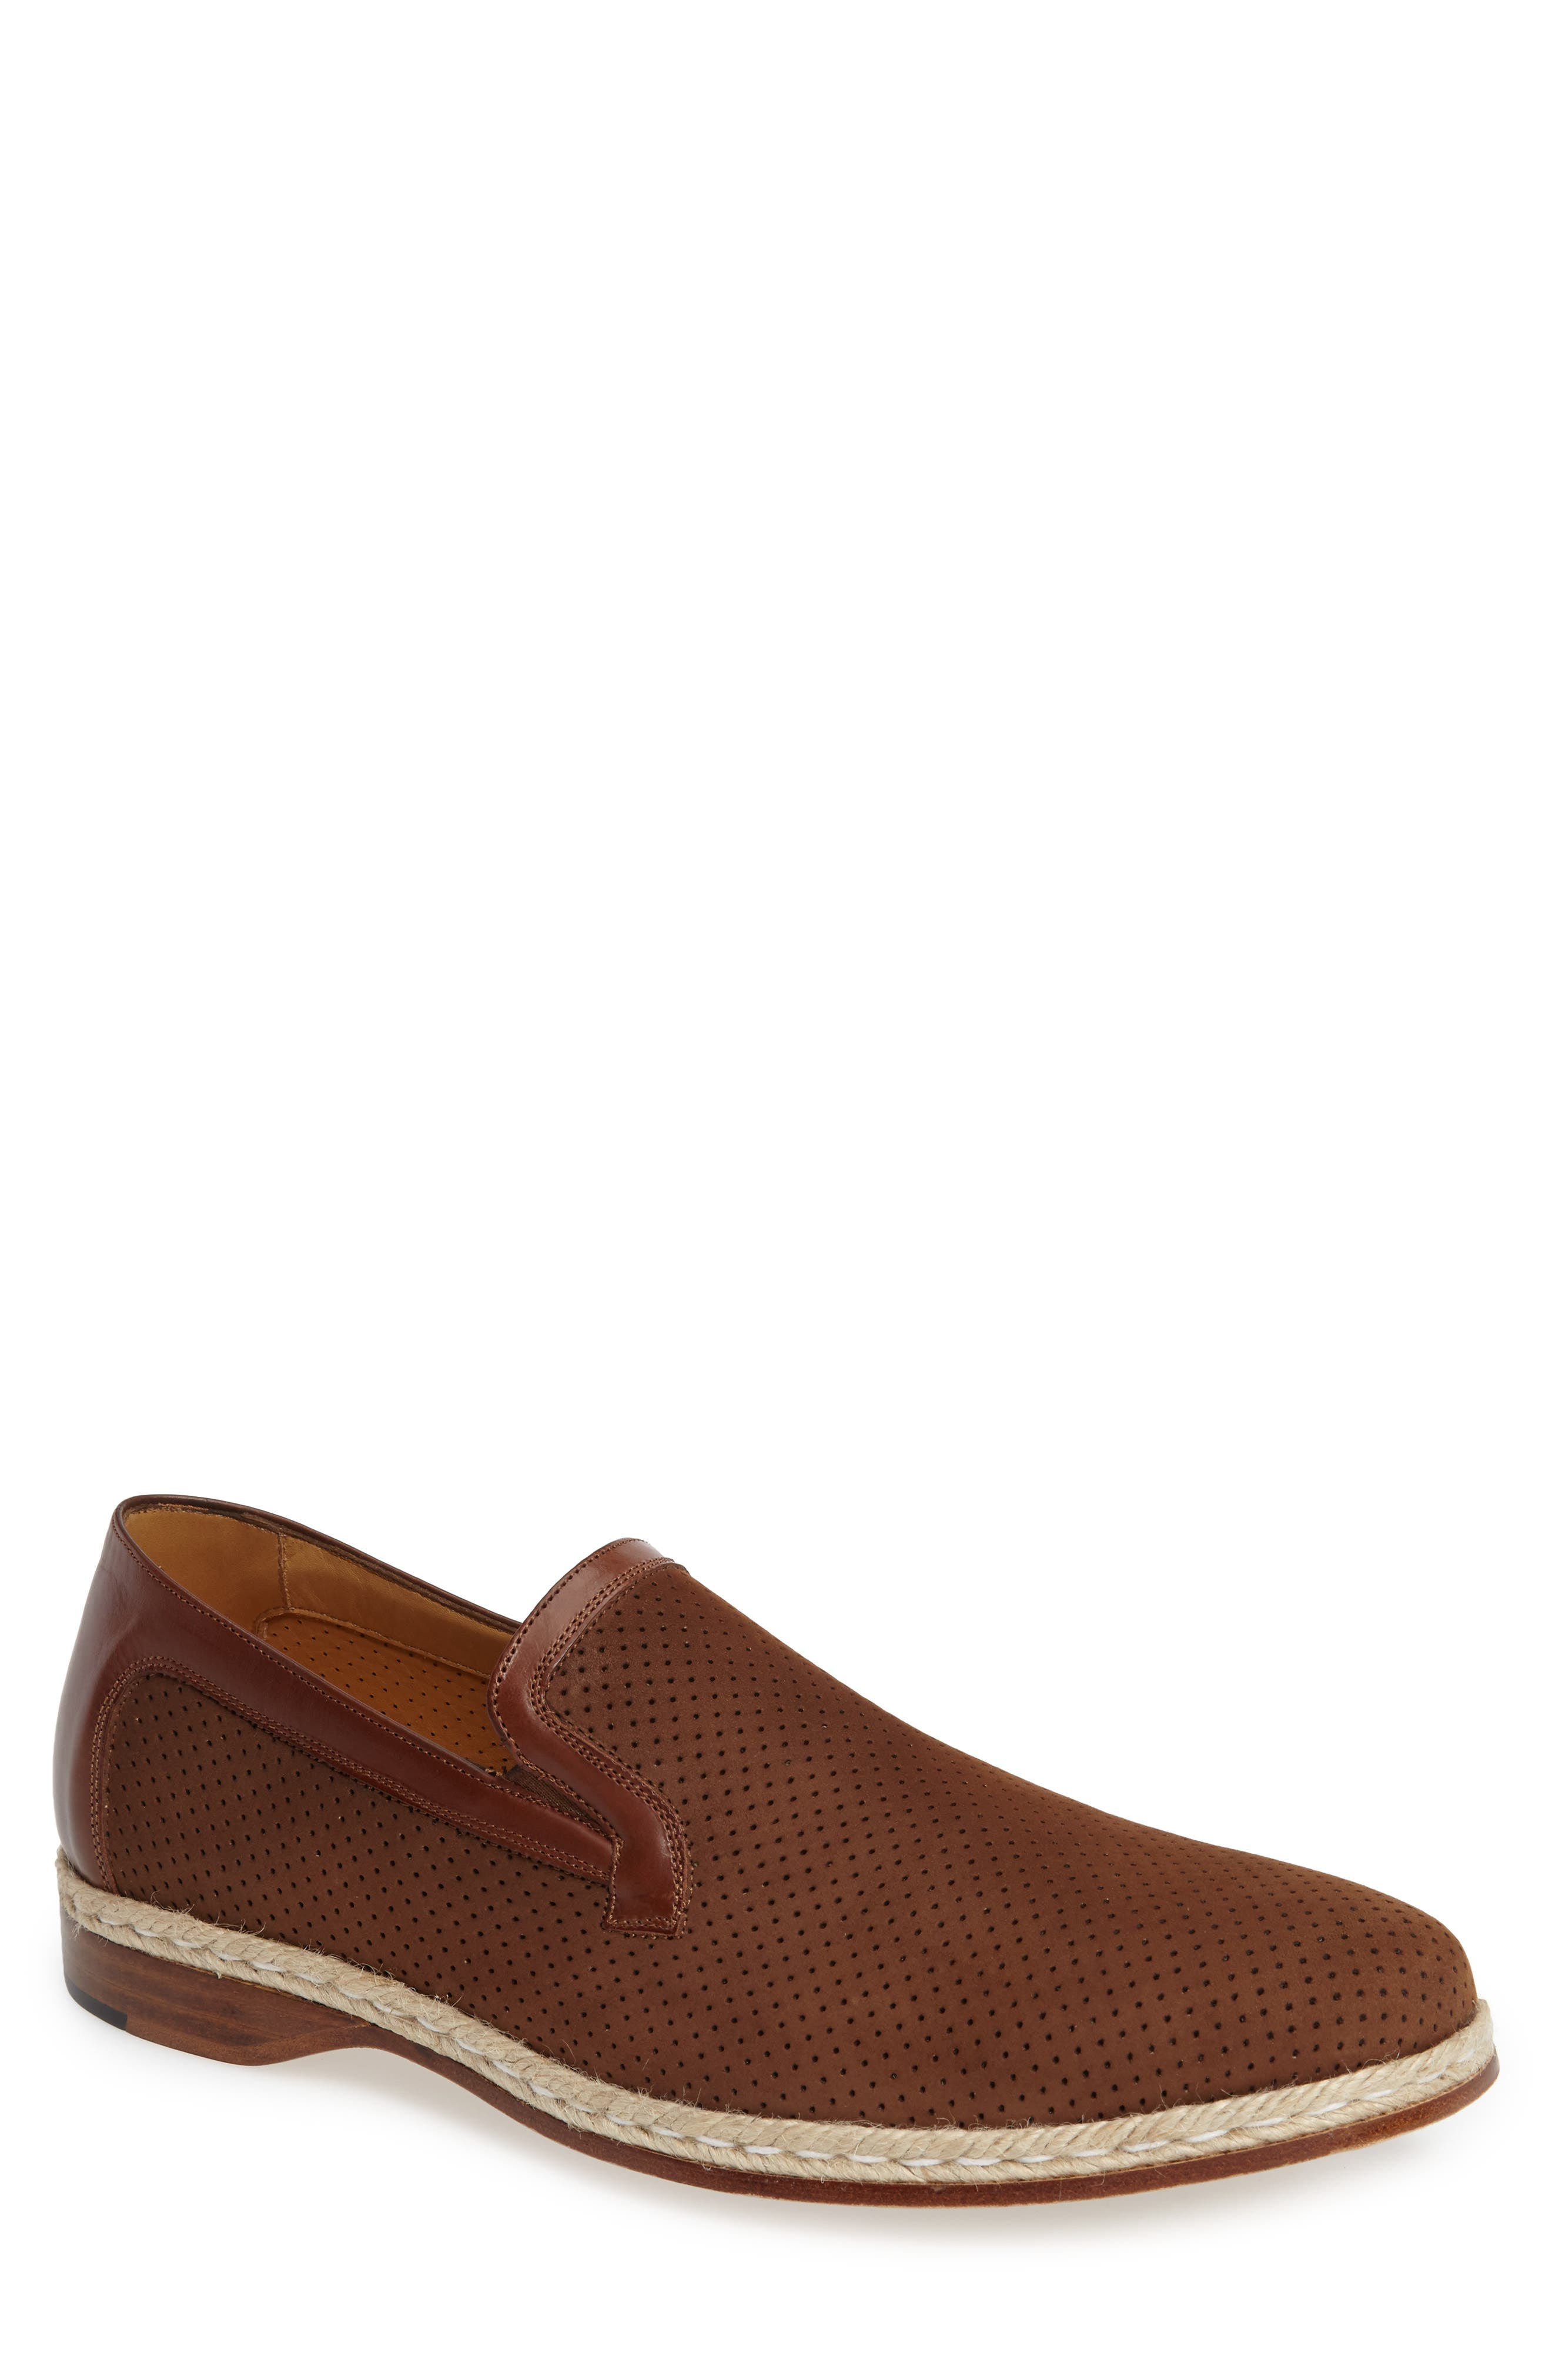 Marcet Perforated Loafer,                         Main,                         color, 200